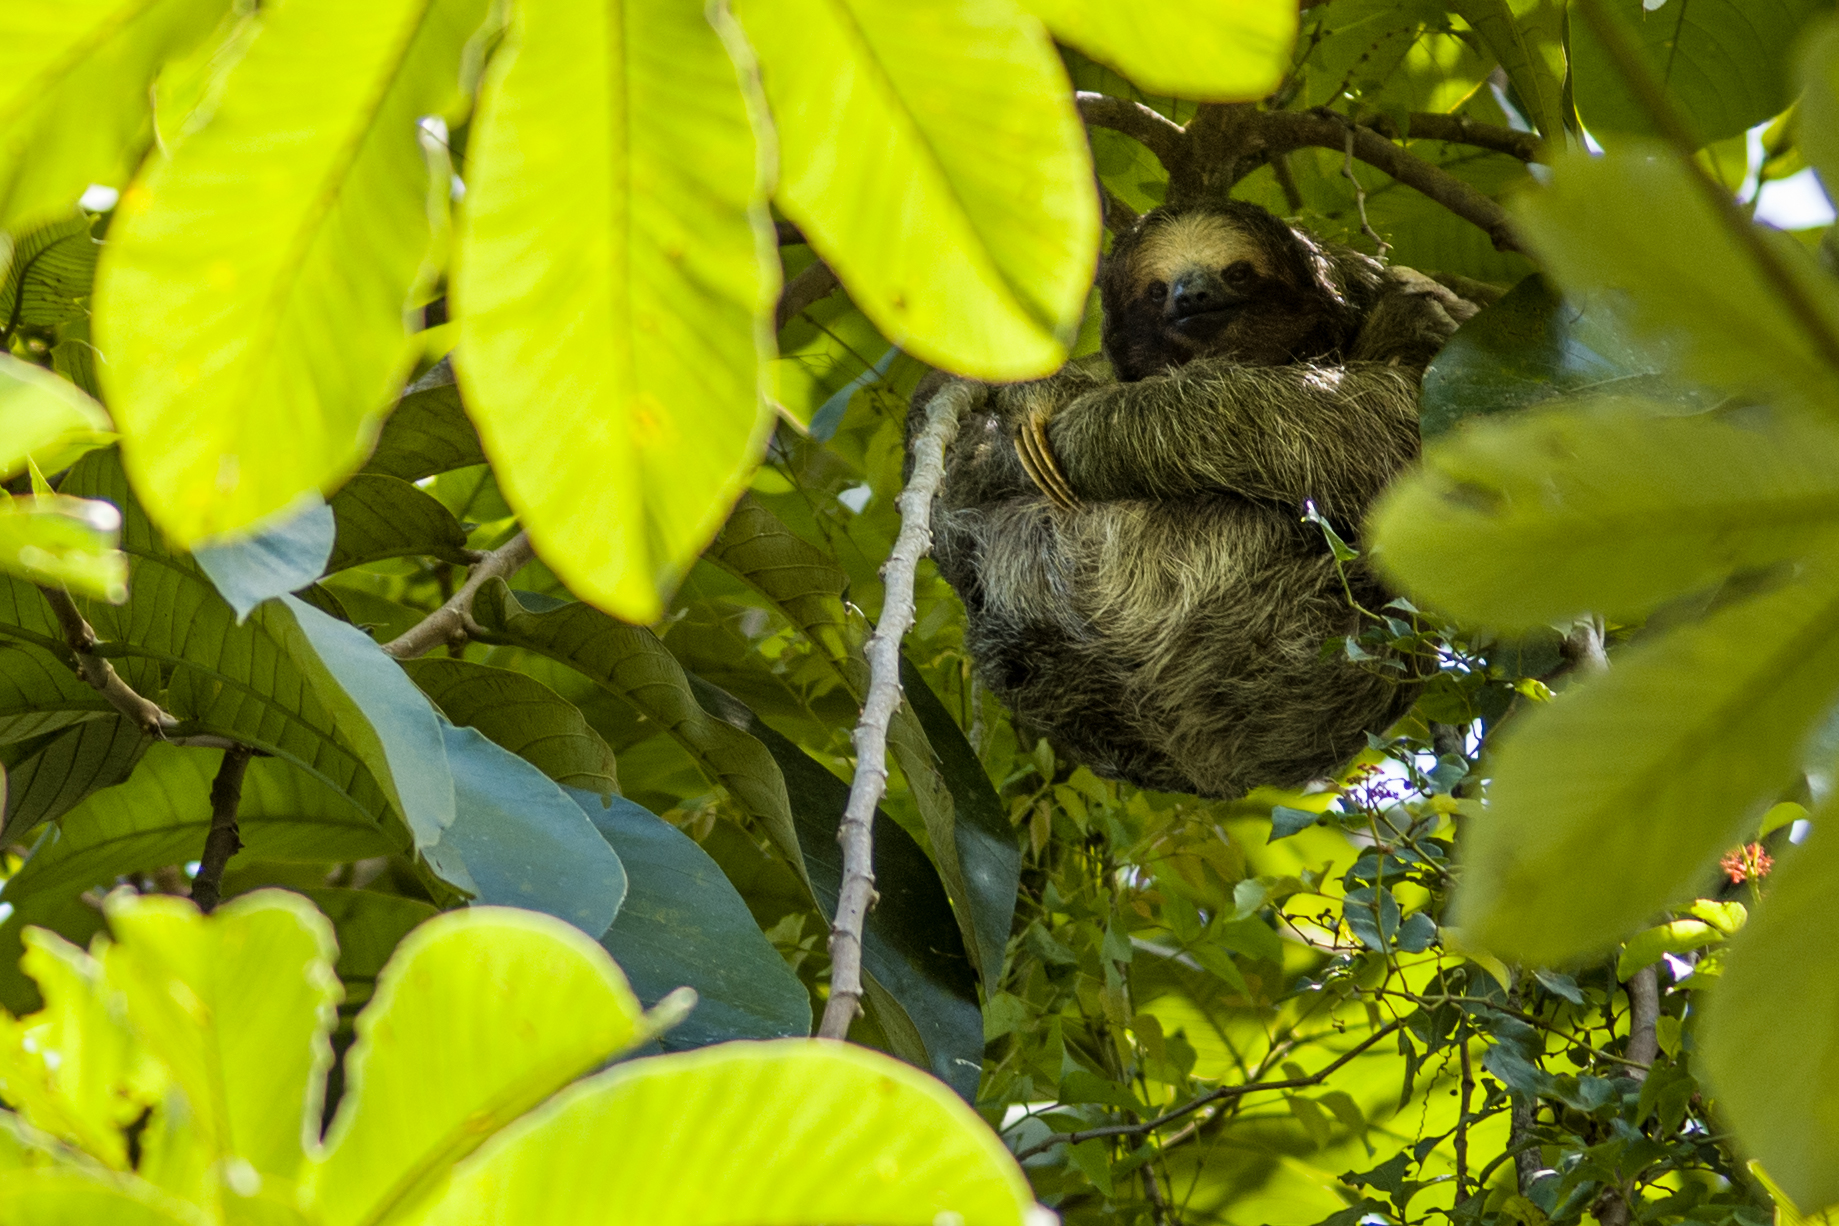 A 3 toed Sloth snoozing in the canopy